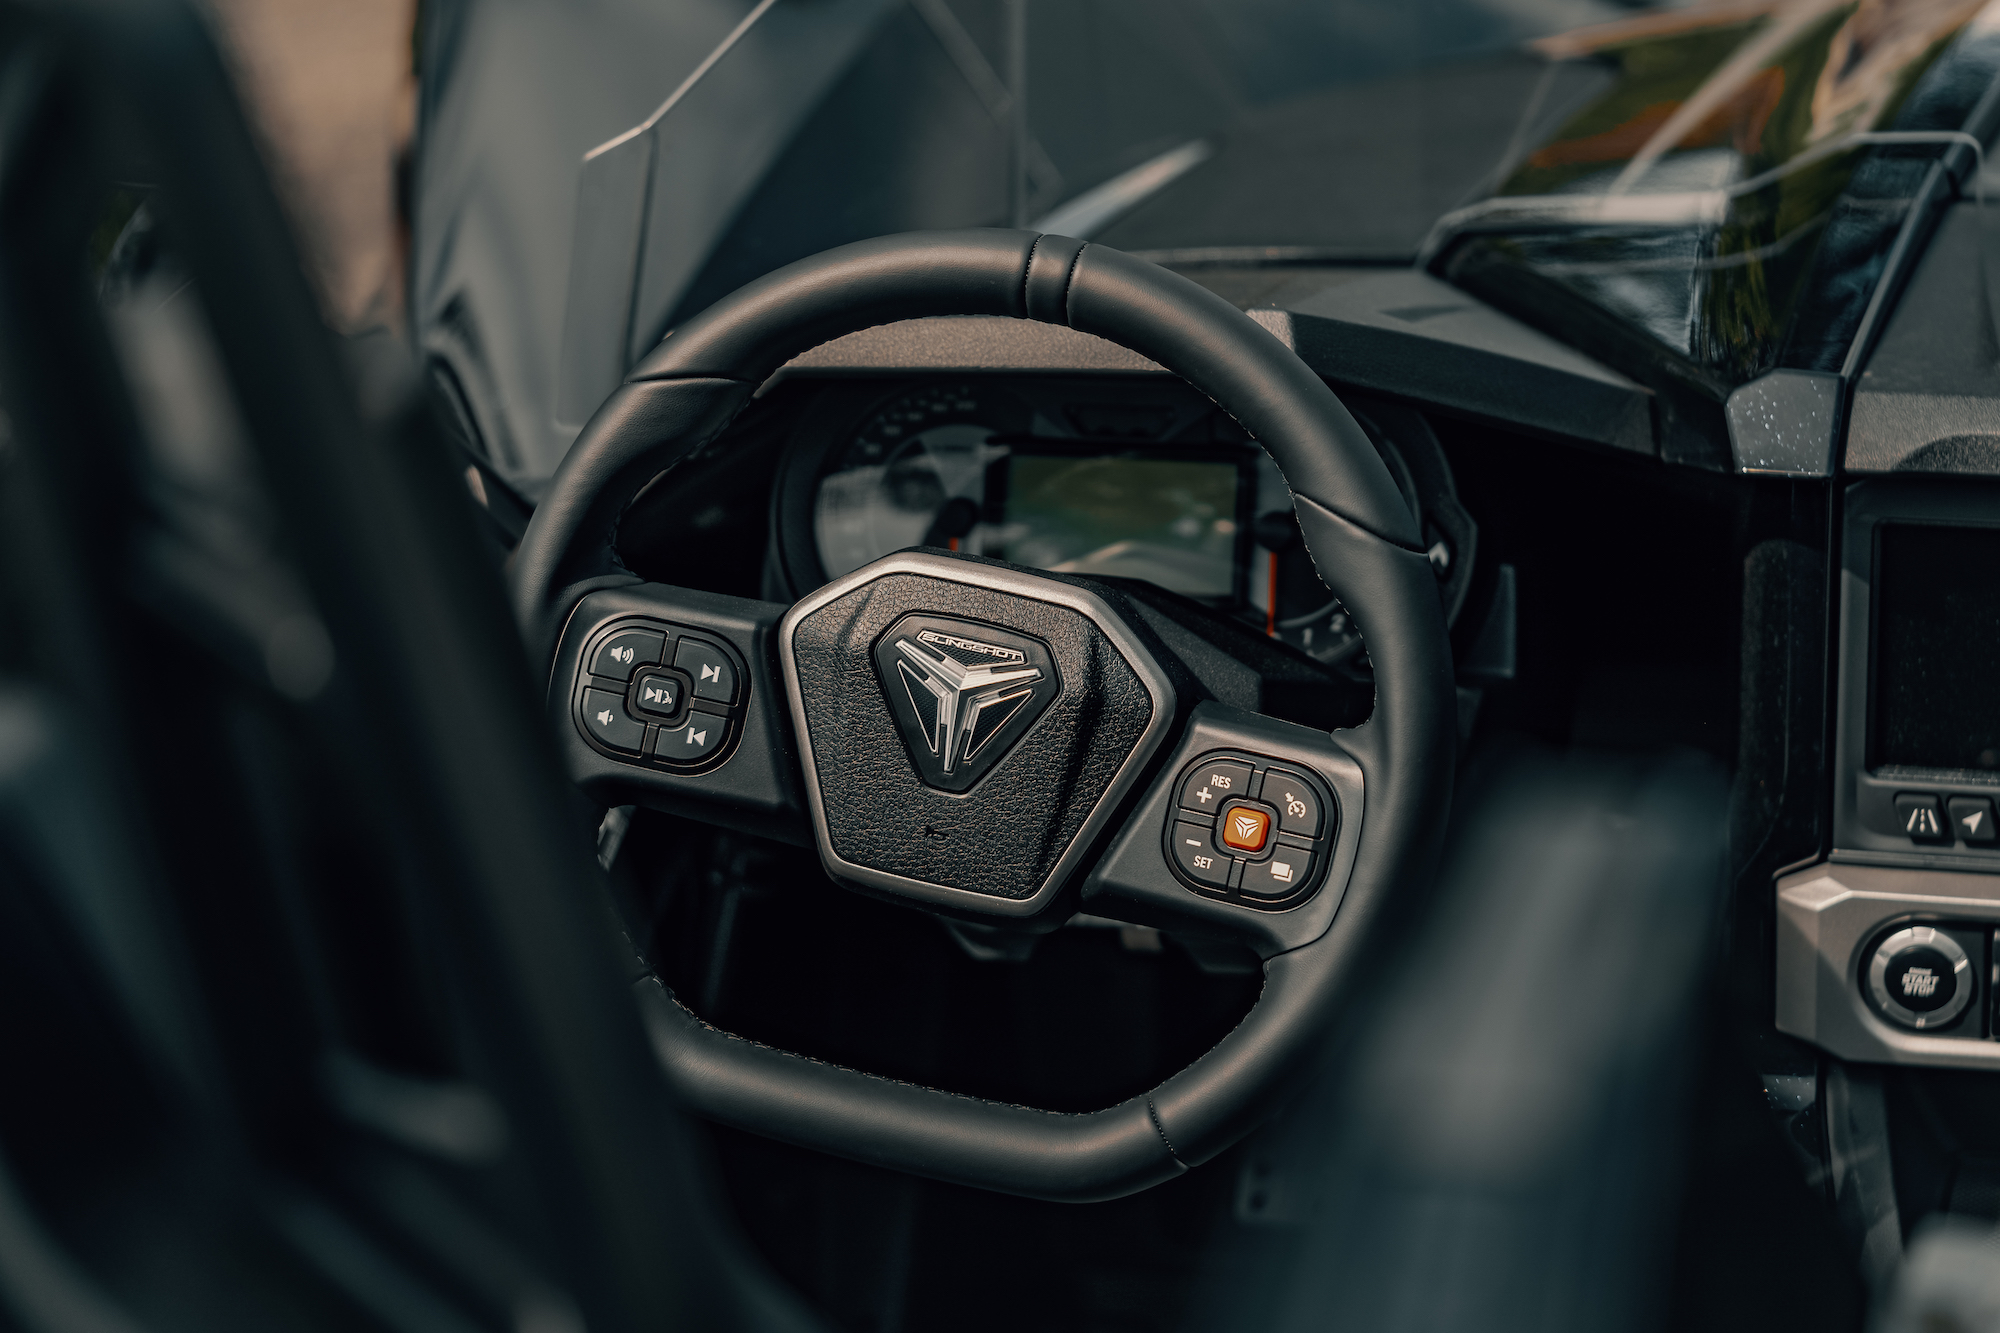 steering wheel of the Polaris Slingshot - Polaris Slingshots are available as rentals at the Mountain Mile Mall at Mountain Mile Adventures in Pigeon Forge, Tennessee